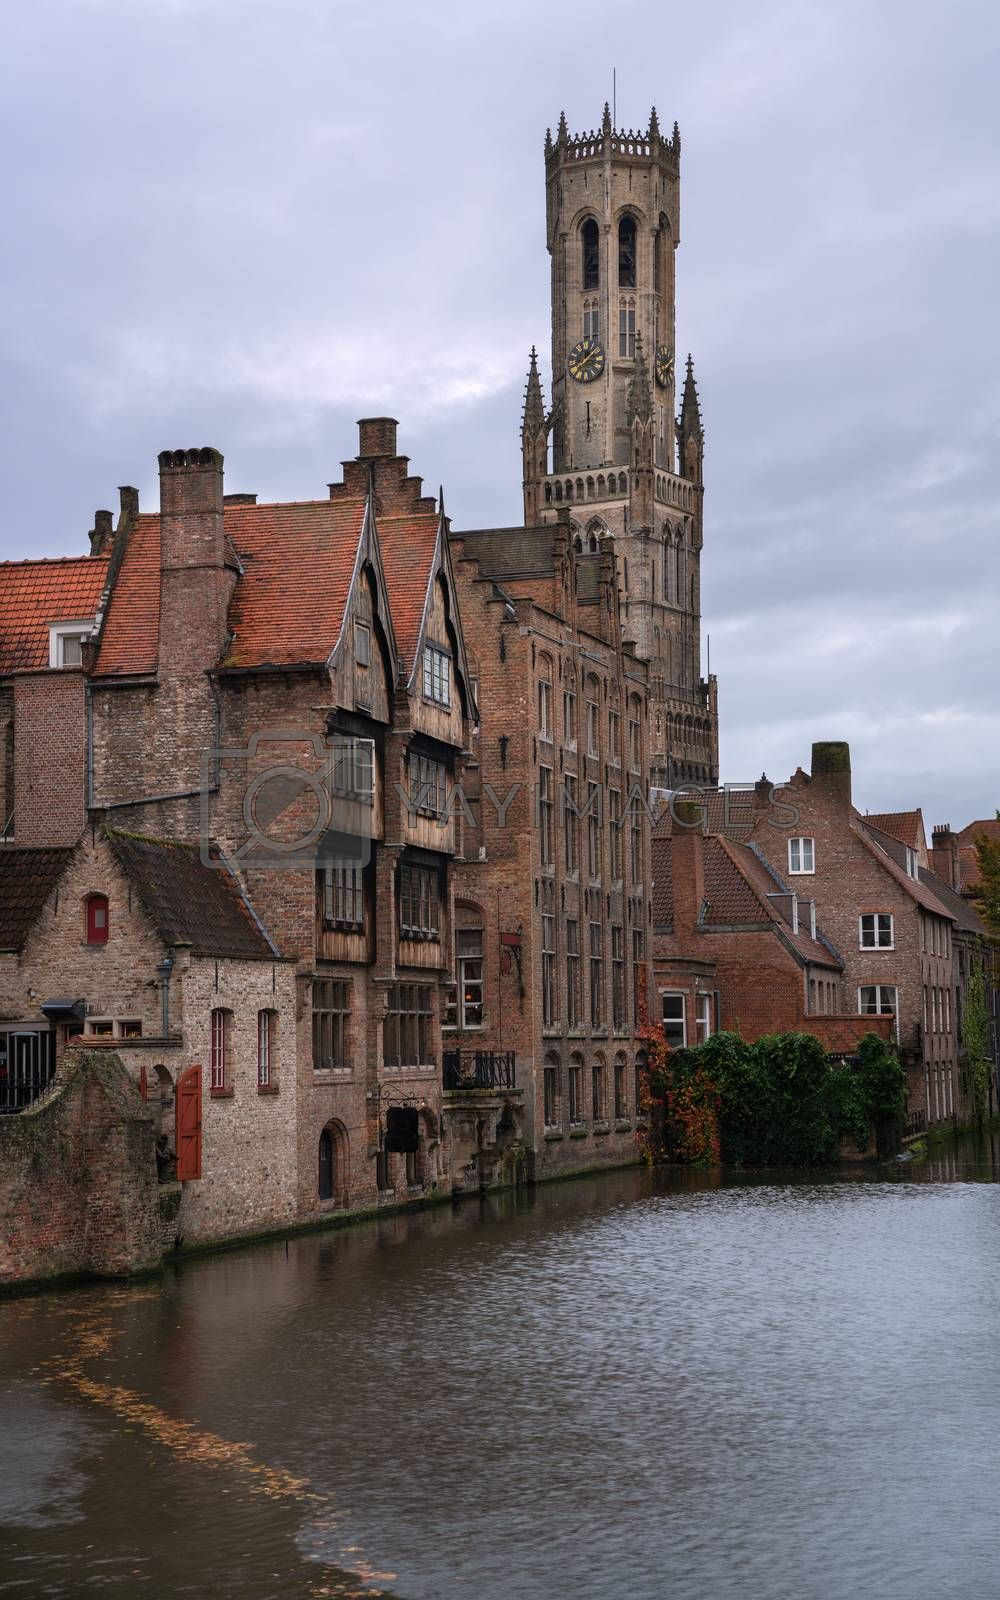 Historic buildings along the canals of Bruges, Belgium